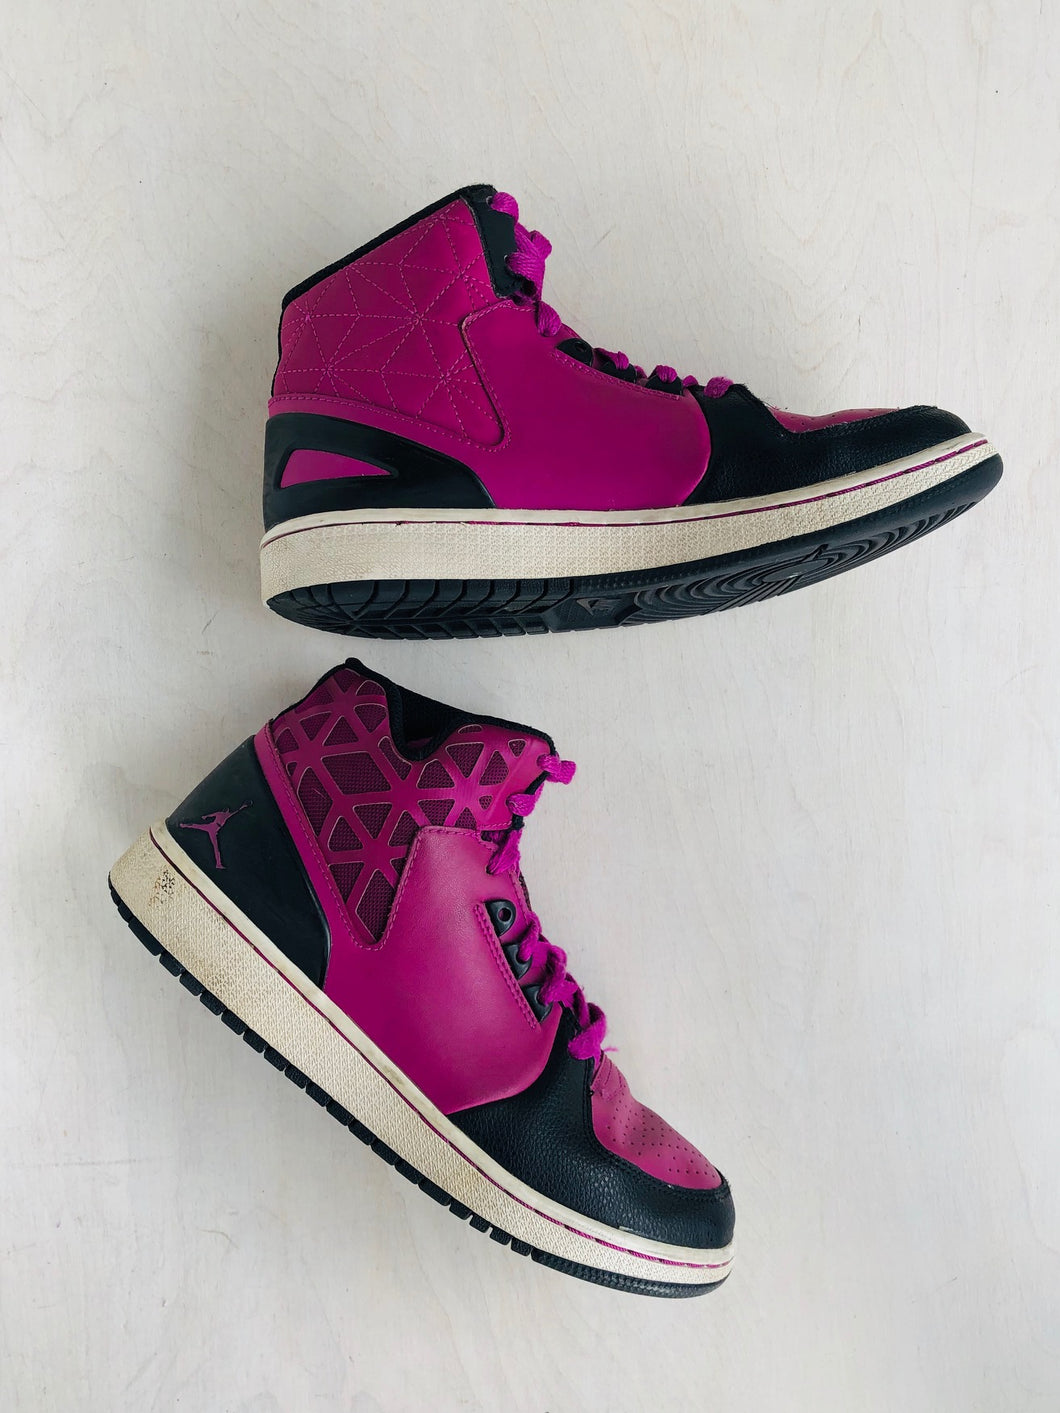 air jordan sneaker / US 4.5 (youth)